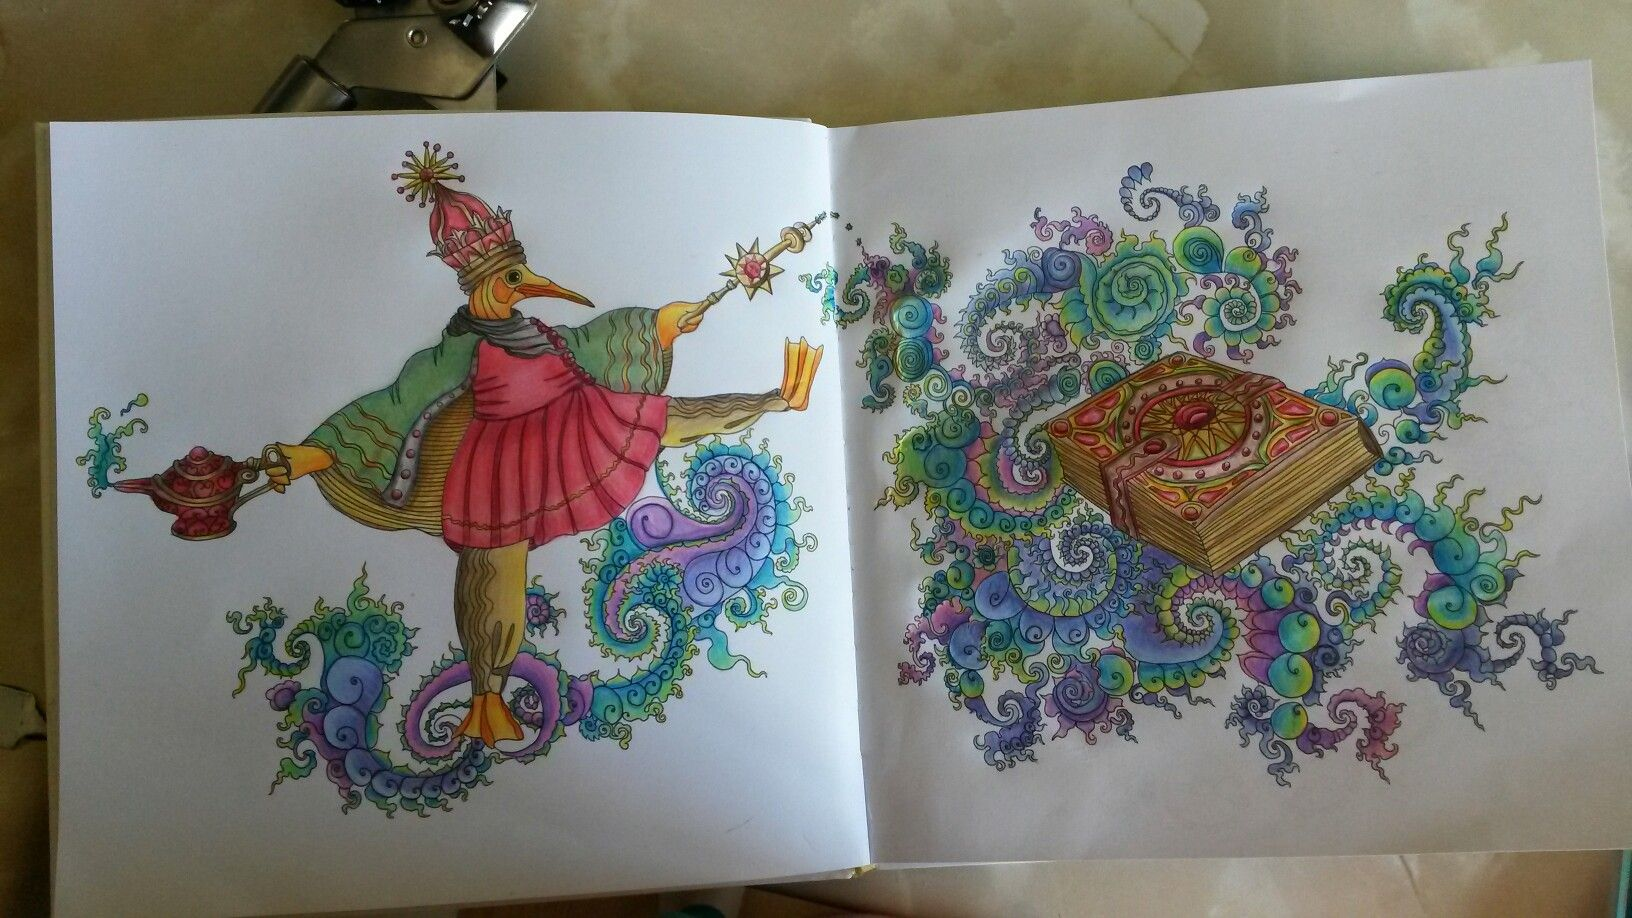 Tangle magic by Jessica Palmer, coloured using wh smith pencils